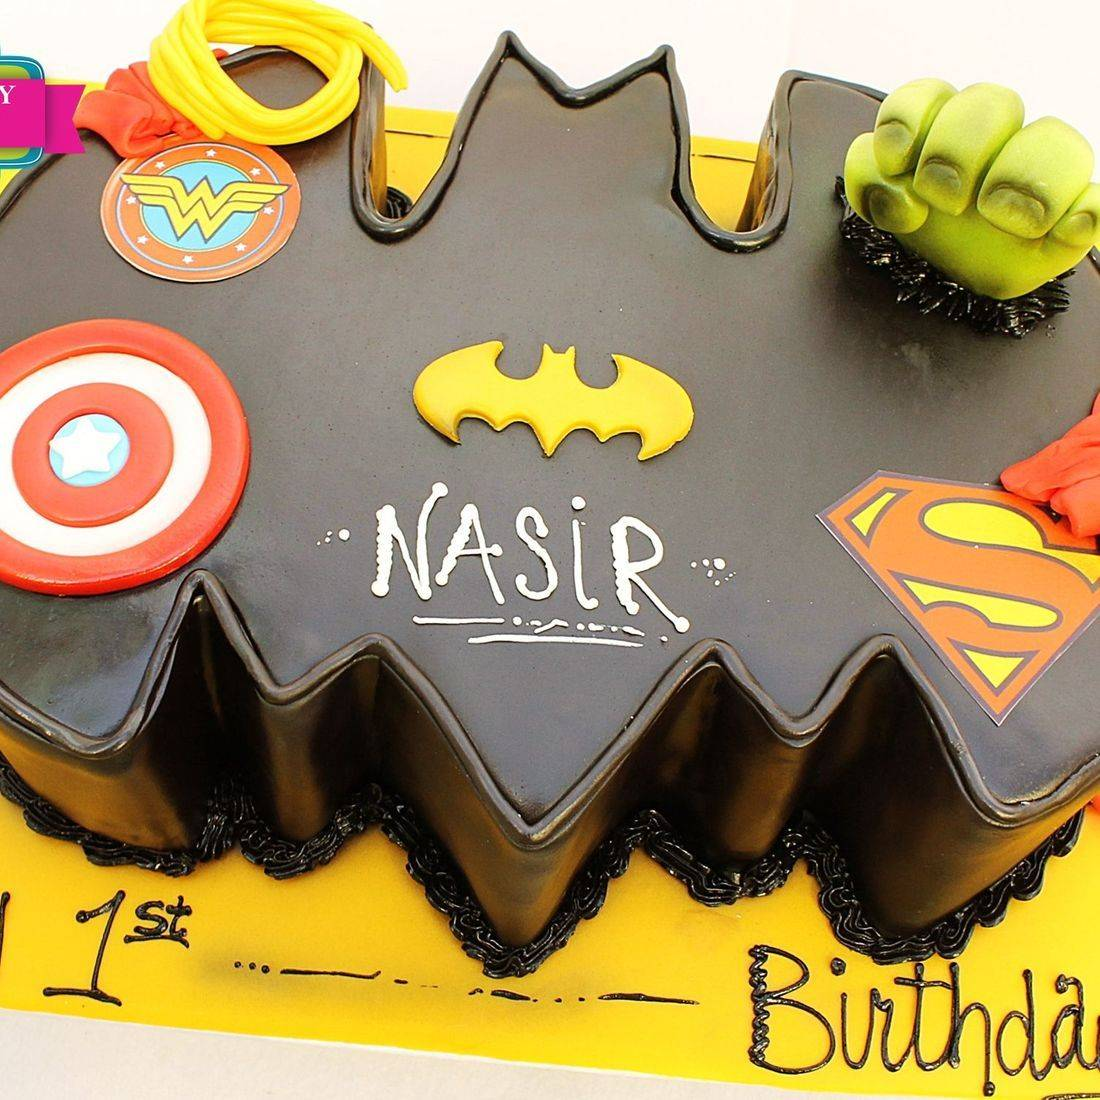 Batman Superhero Cake Dimensional Cake Milwaukee